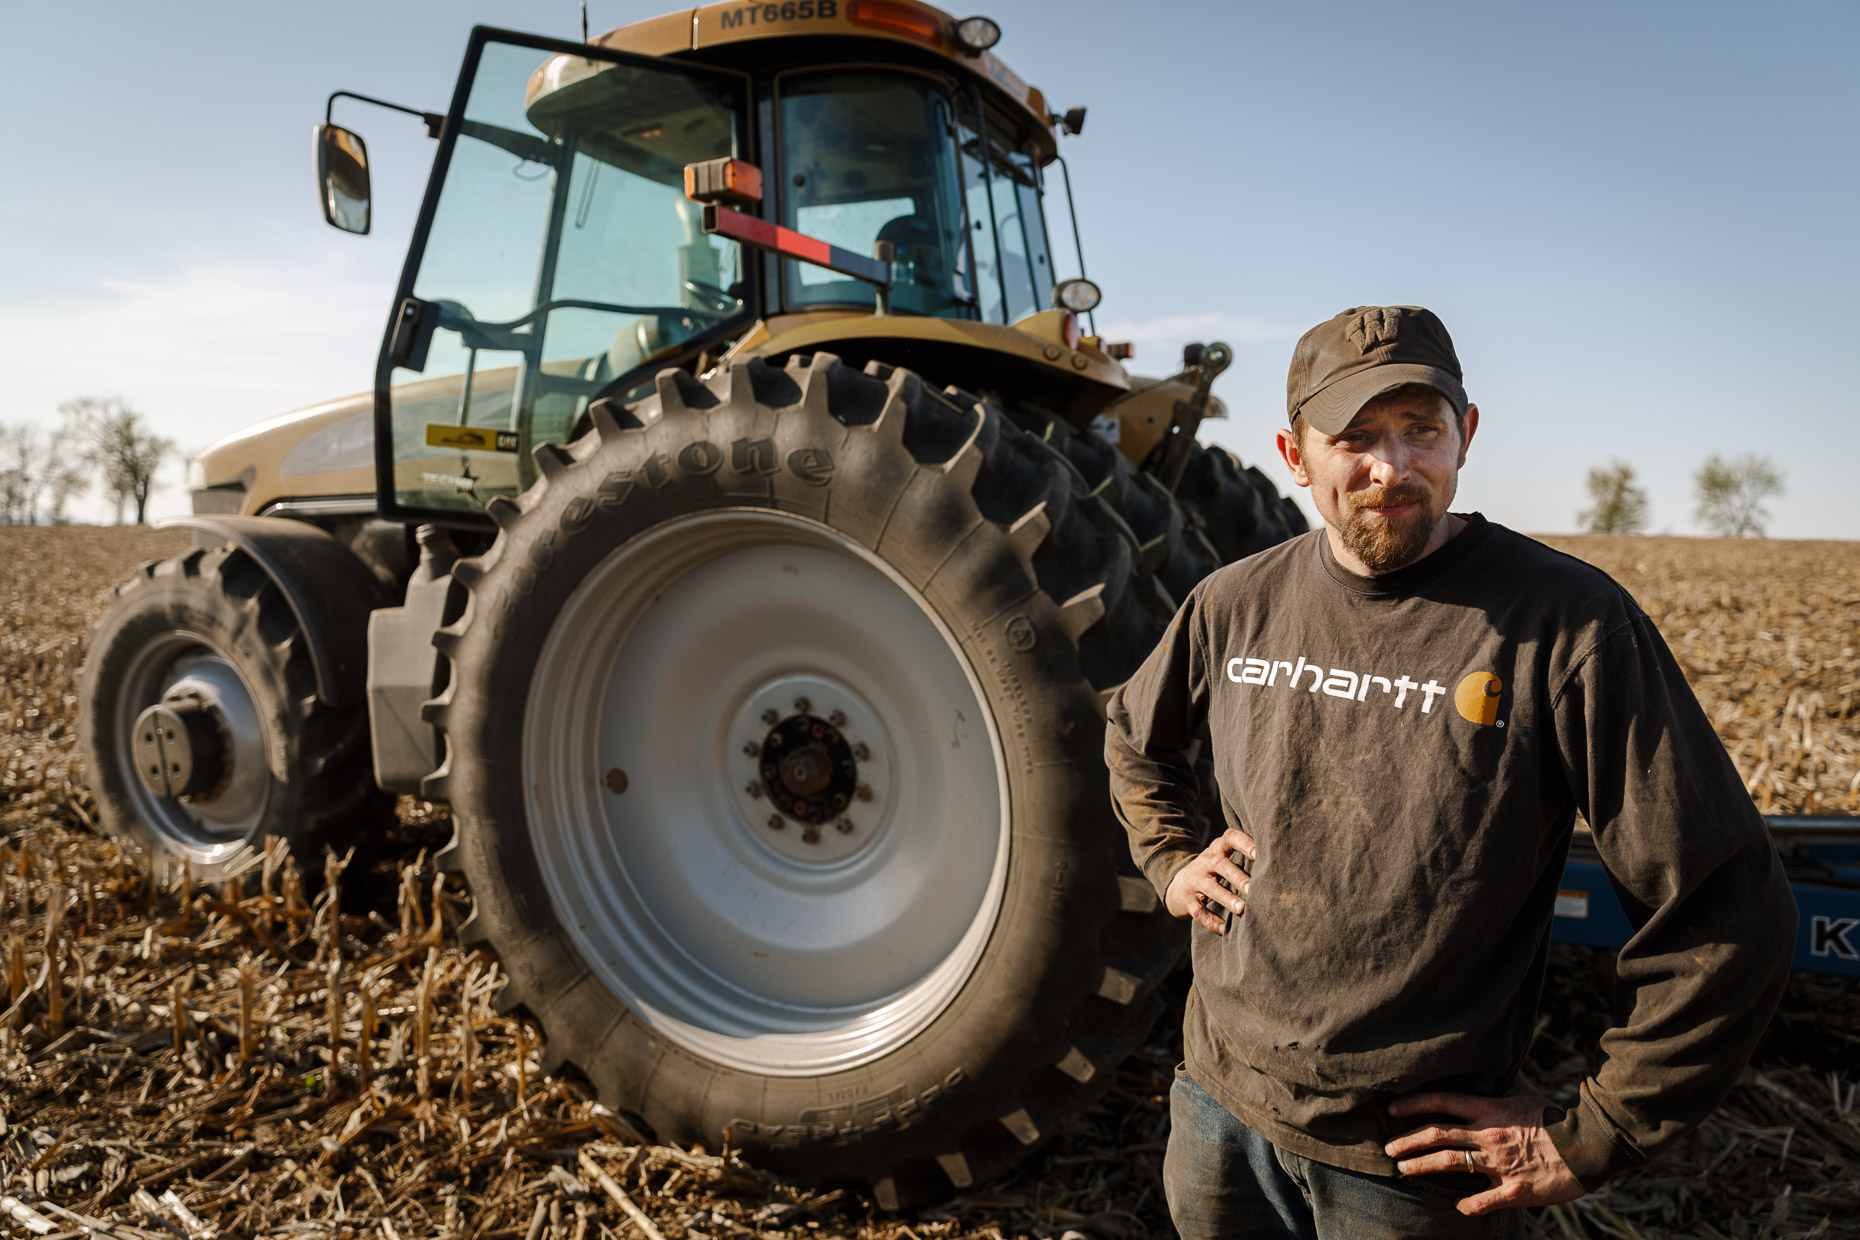 Joe Woodman takes a break from planting soybeans on the family farm in Janesville, Wisconsin.